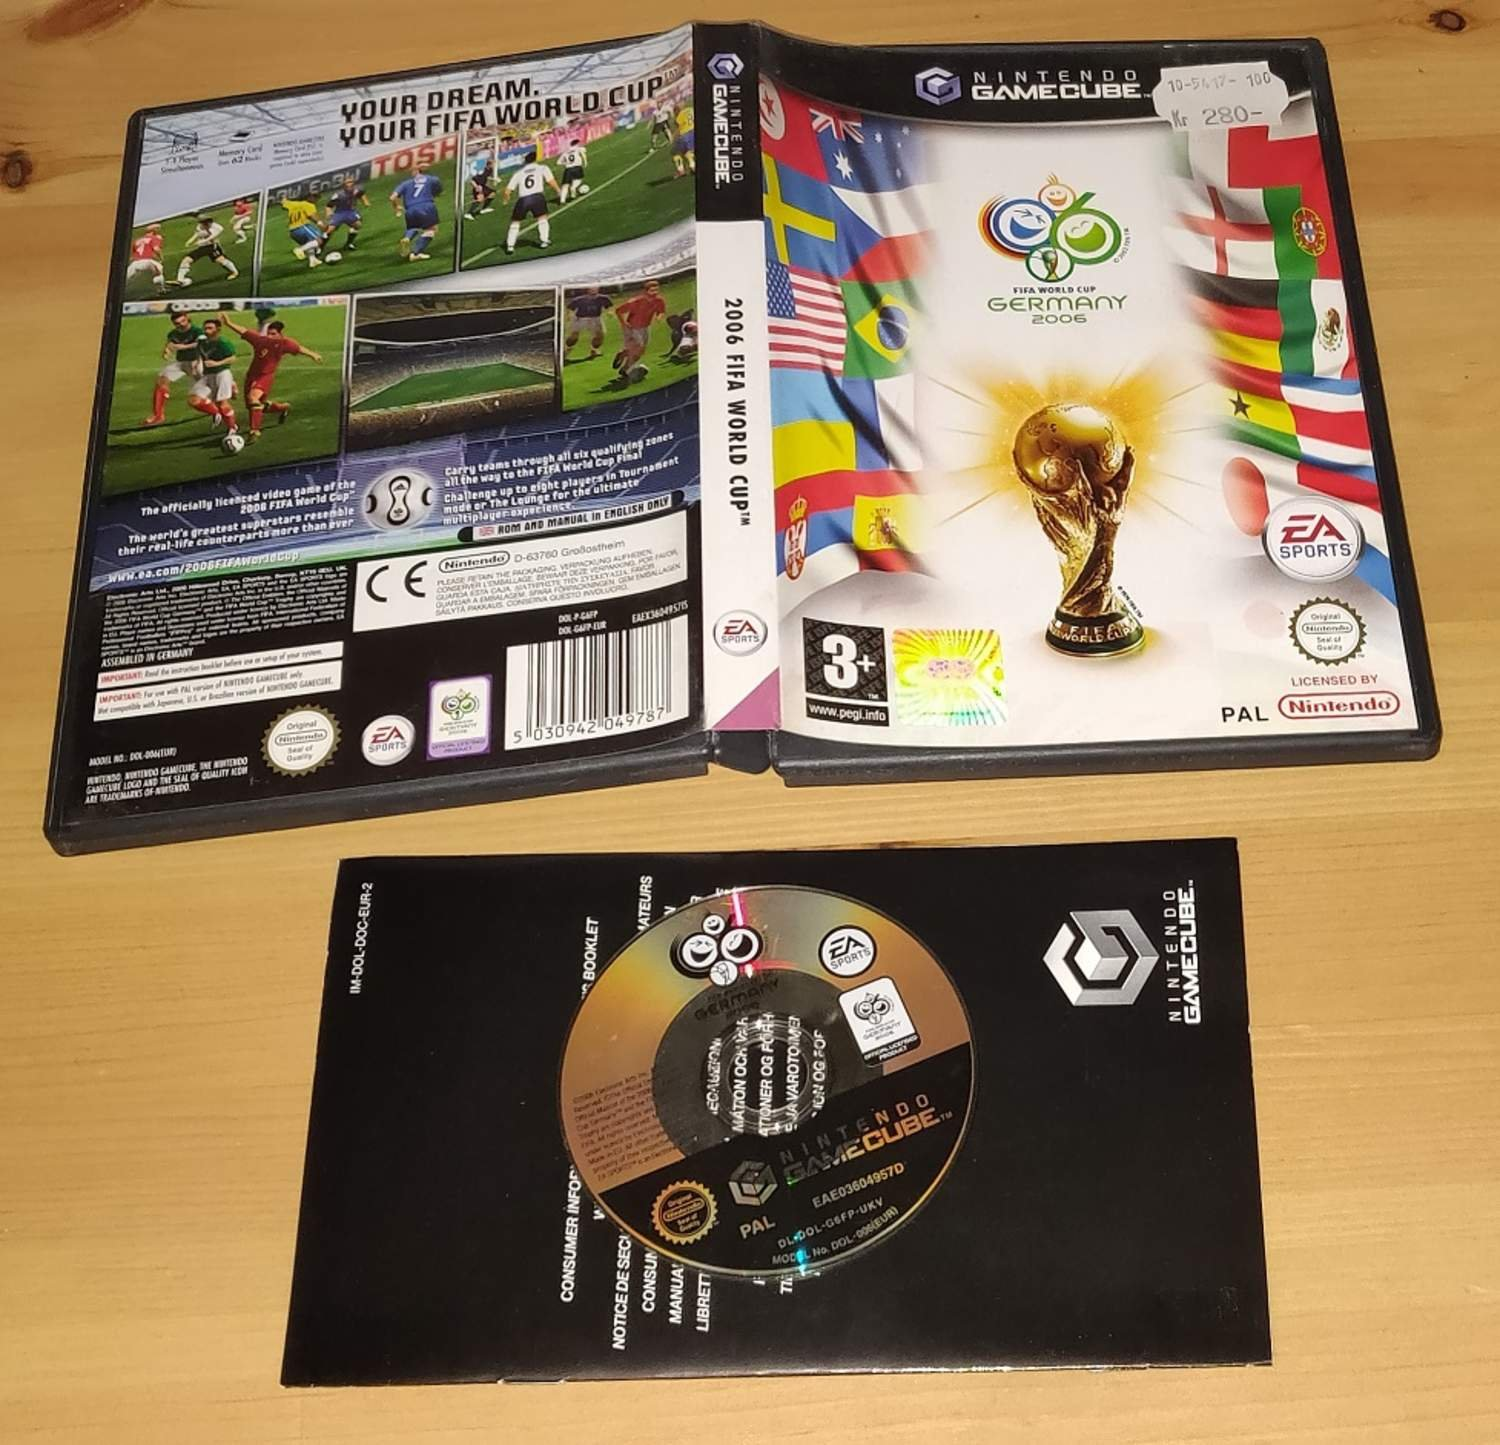 FIFA World Cup Germany 2006 Till Gamecube! Utrop 1kr!